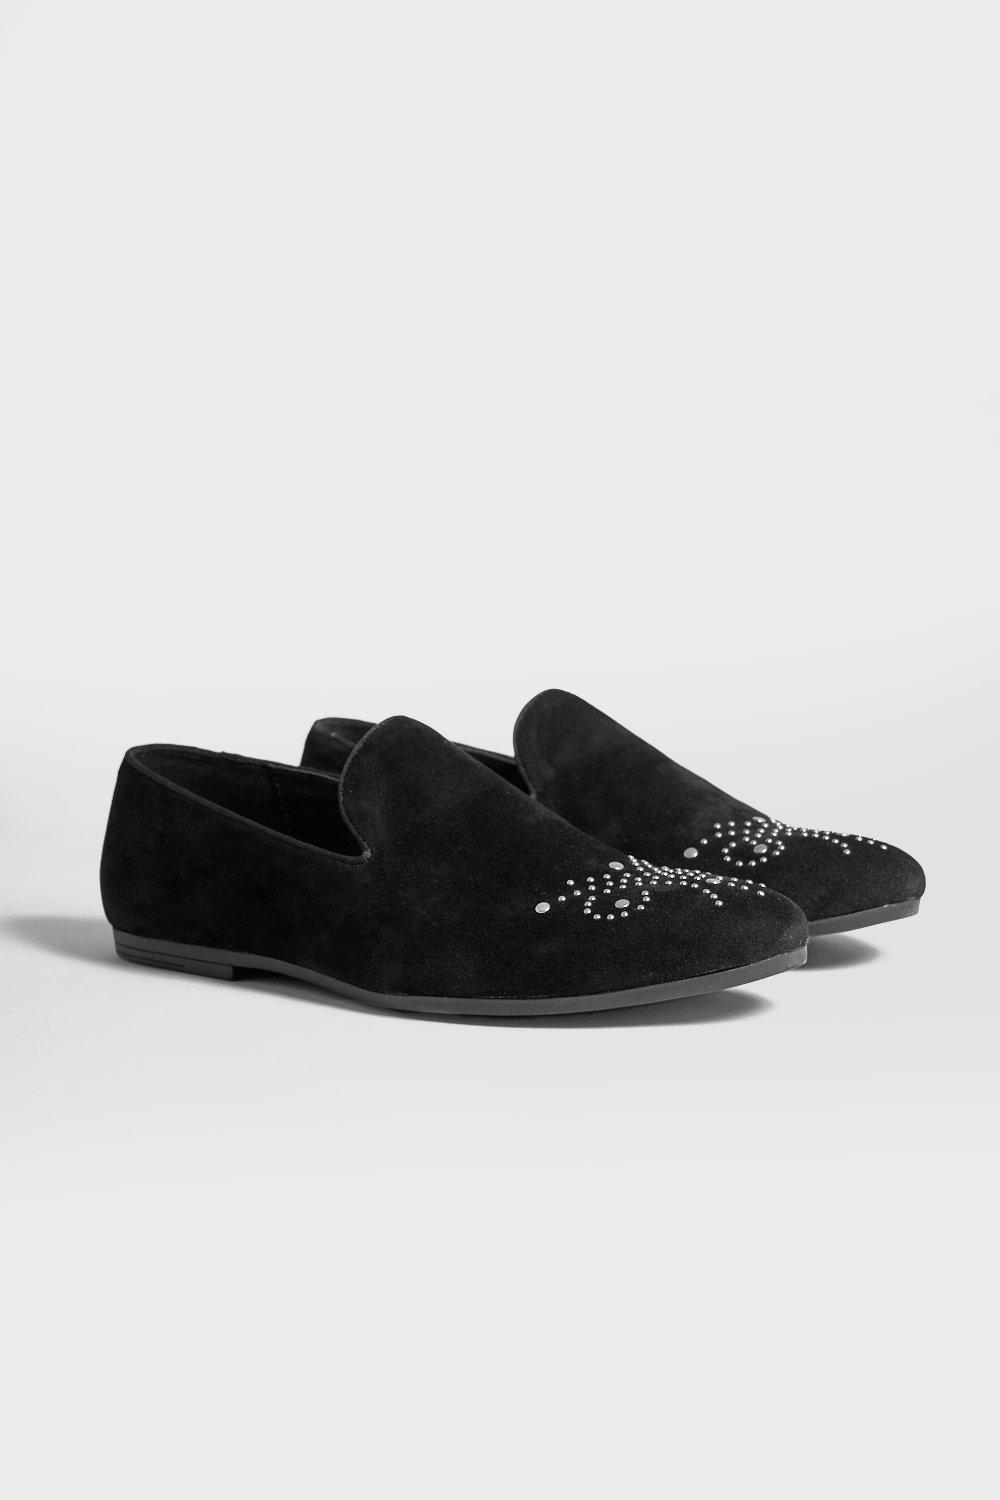 Studded Toe Faux Suede Loafer